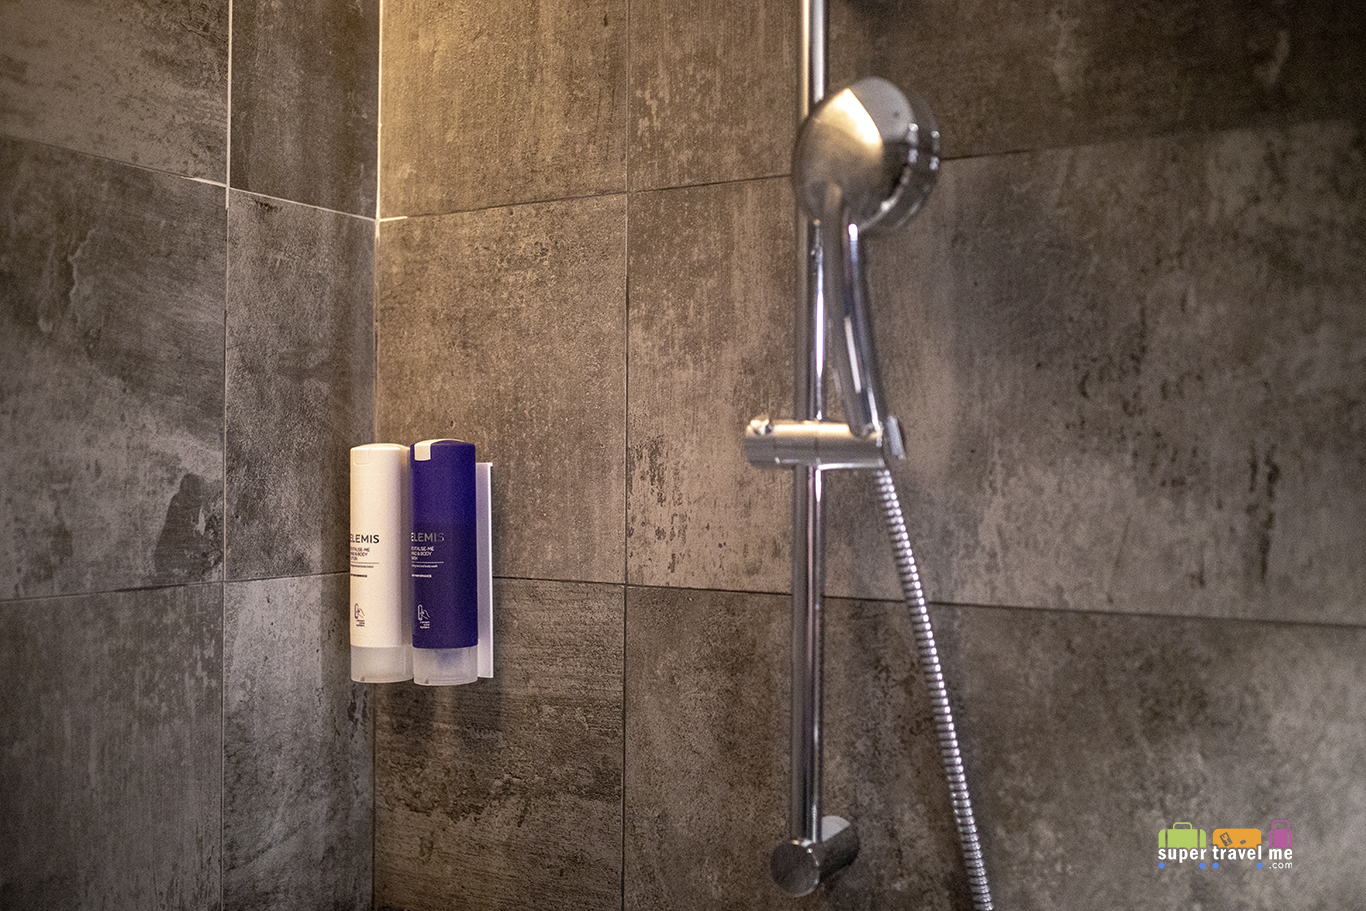 One of two shower suites at Plaza Premium First Hong Kong